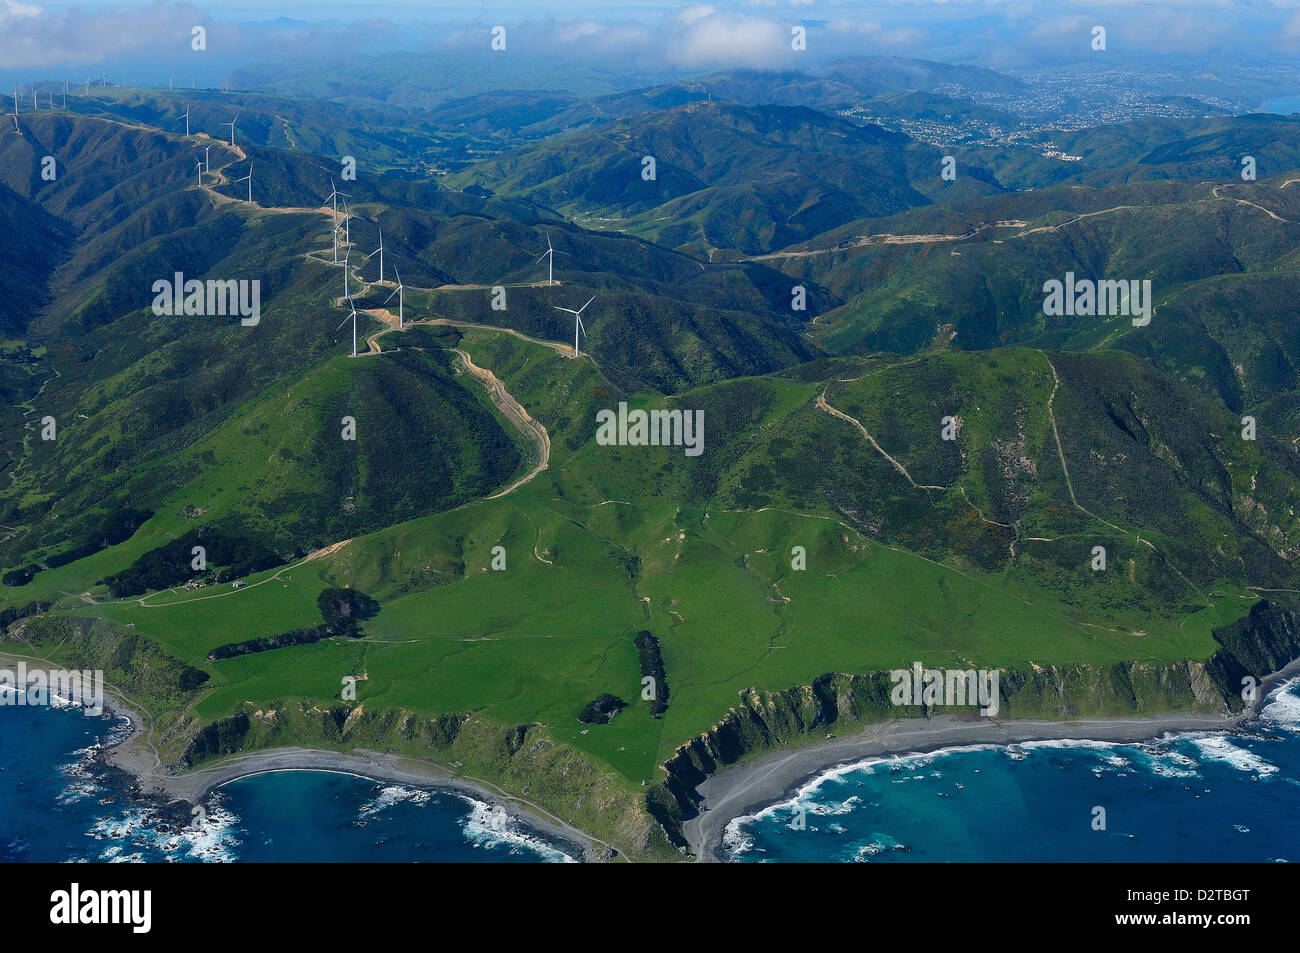 View of Wellington from the air, North Island, New Zealand, Pacific - Stock Image